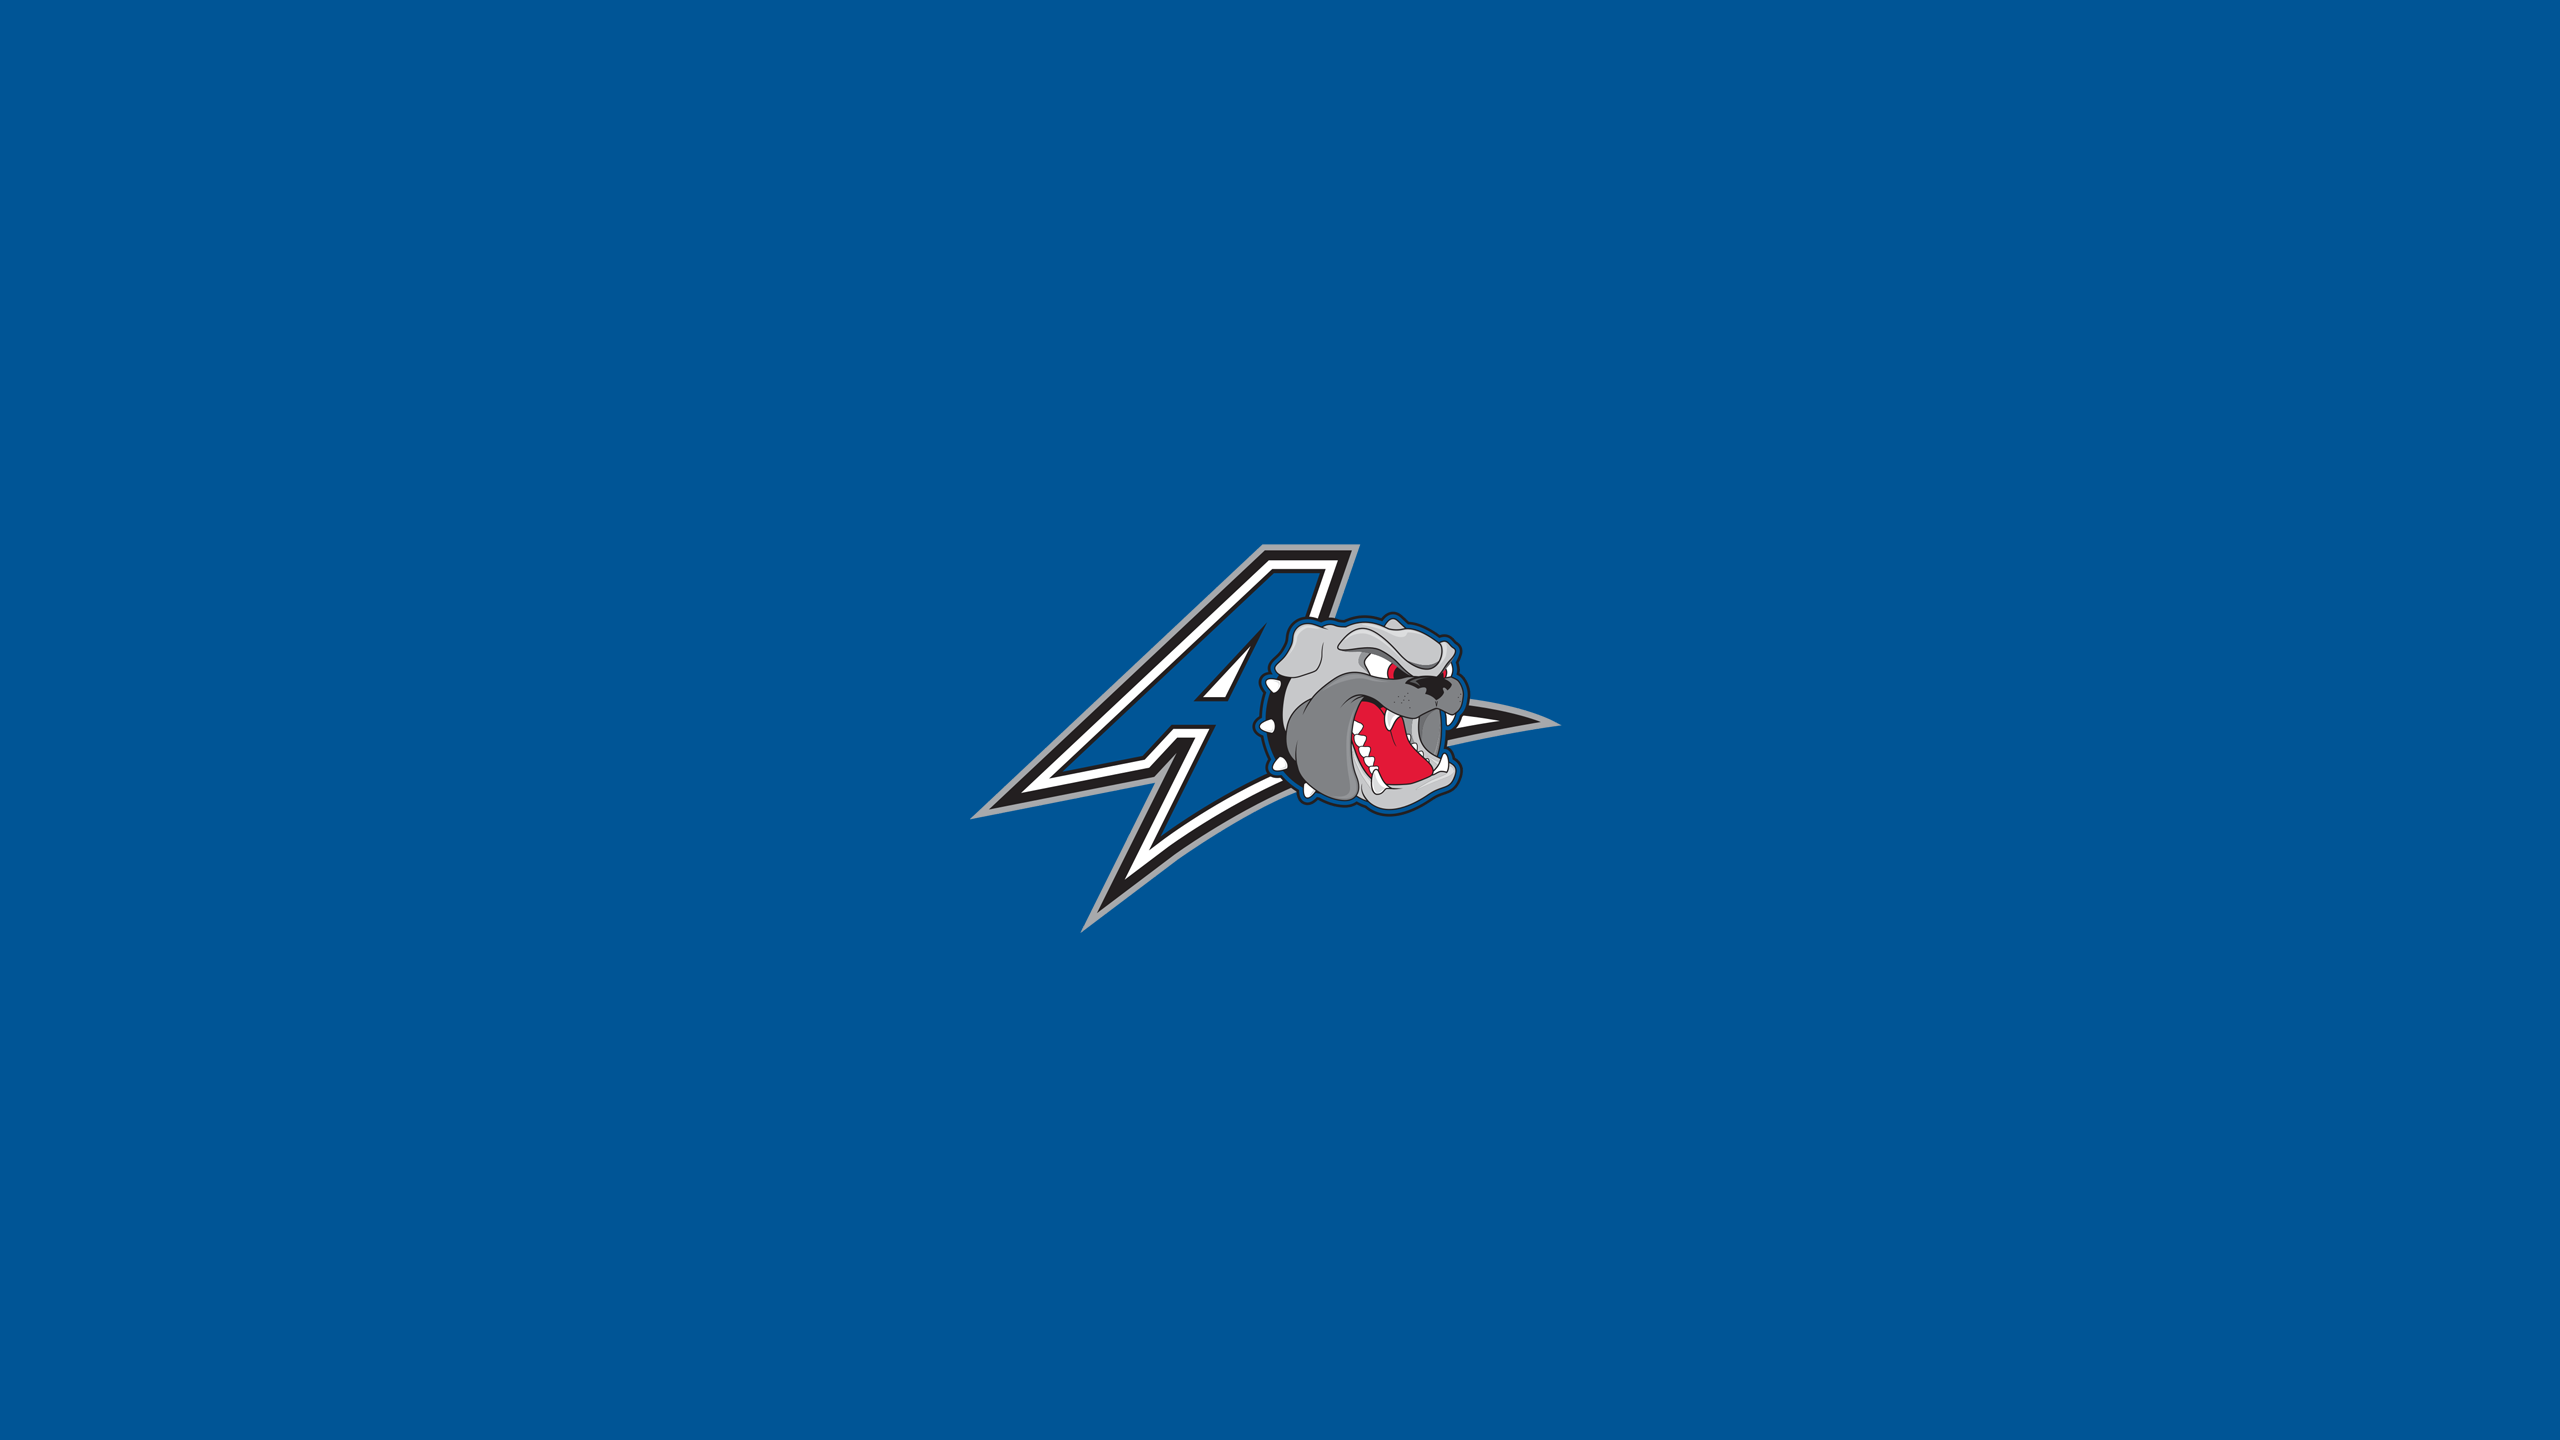 UNC-Asheville Bulldogs